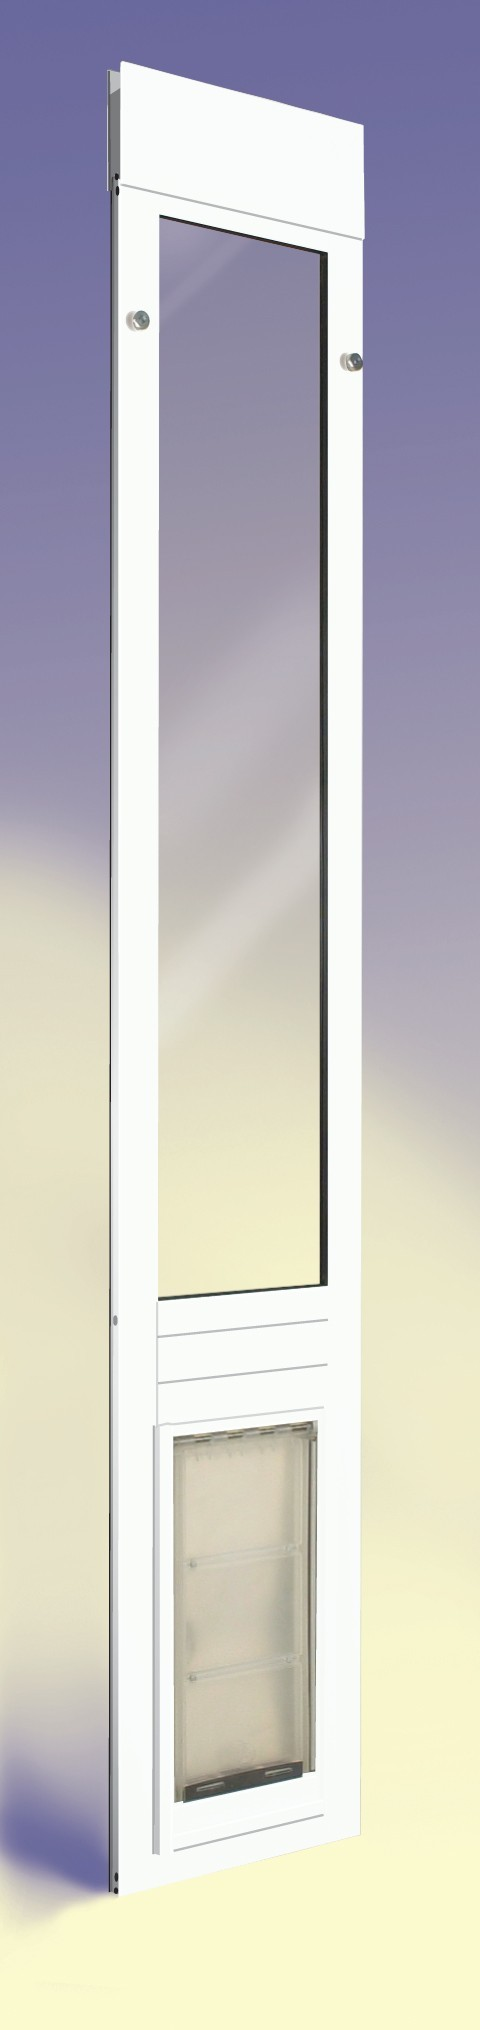 ... Quick Panel III Endura Flap Dog Door Sliding Glass Doors White Finish  ...